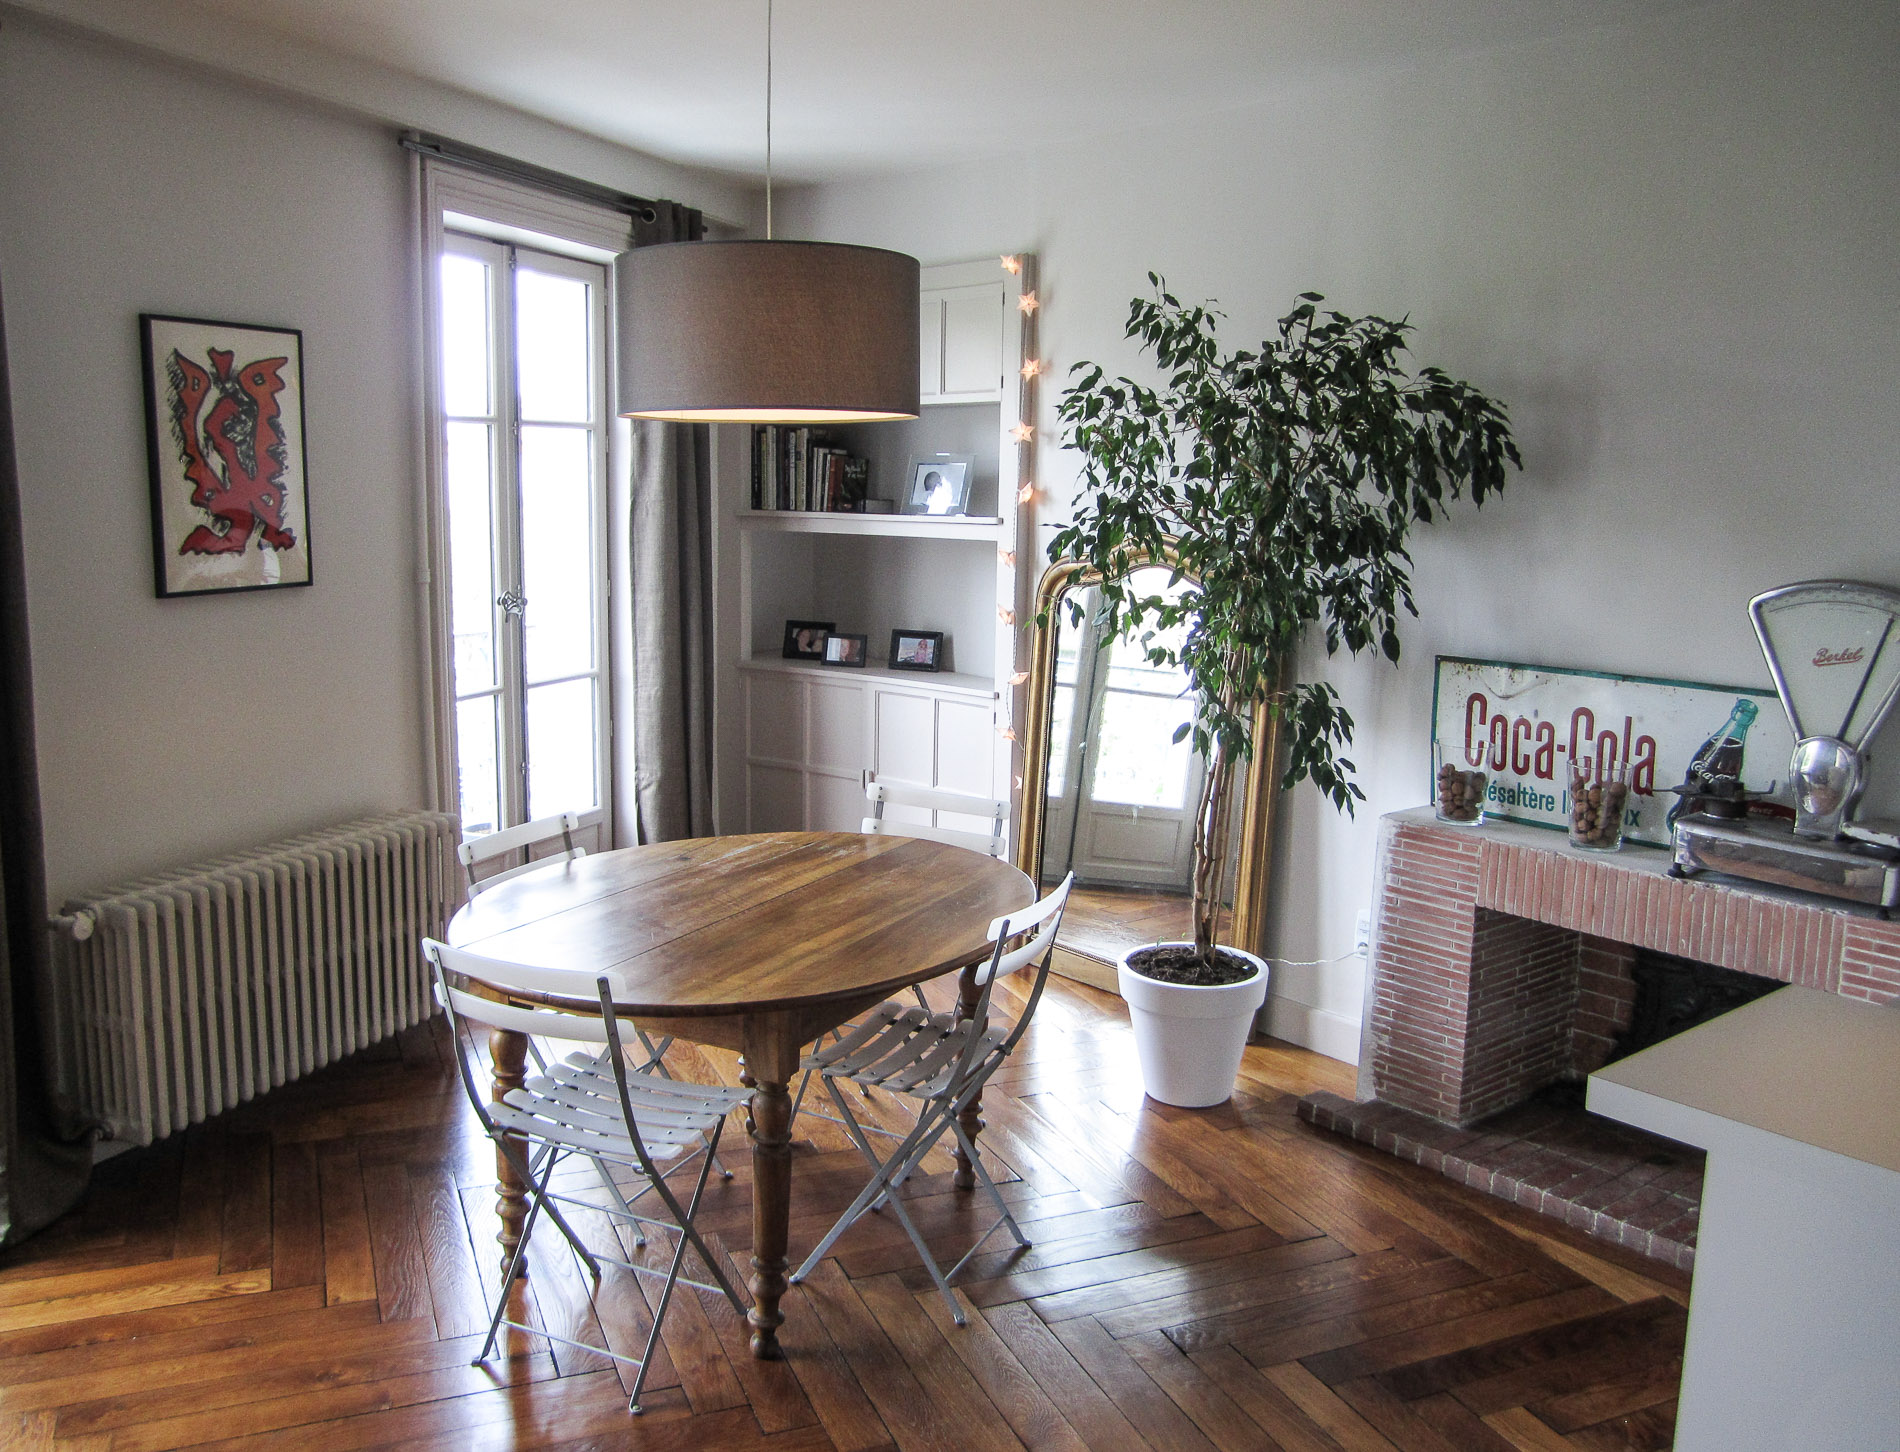 Awesome agencement intrieurs appartement ancien lyon cuisine moderne bar hotte dcorative parquet for Cuisine moderne ancien